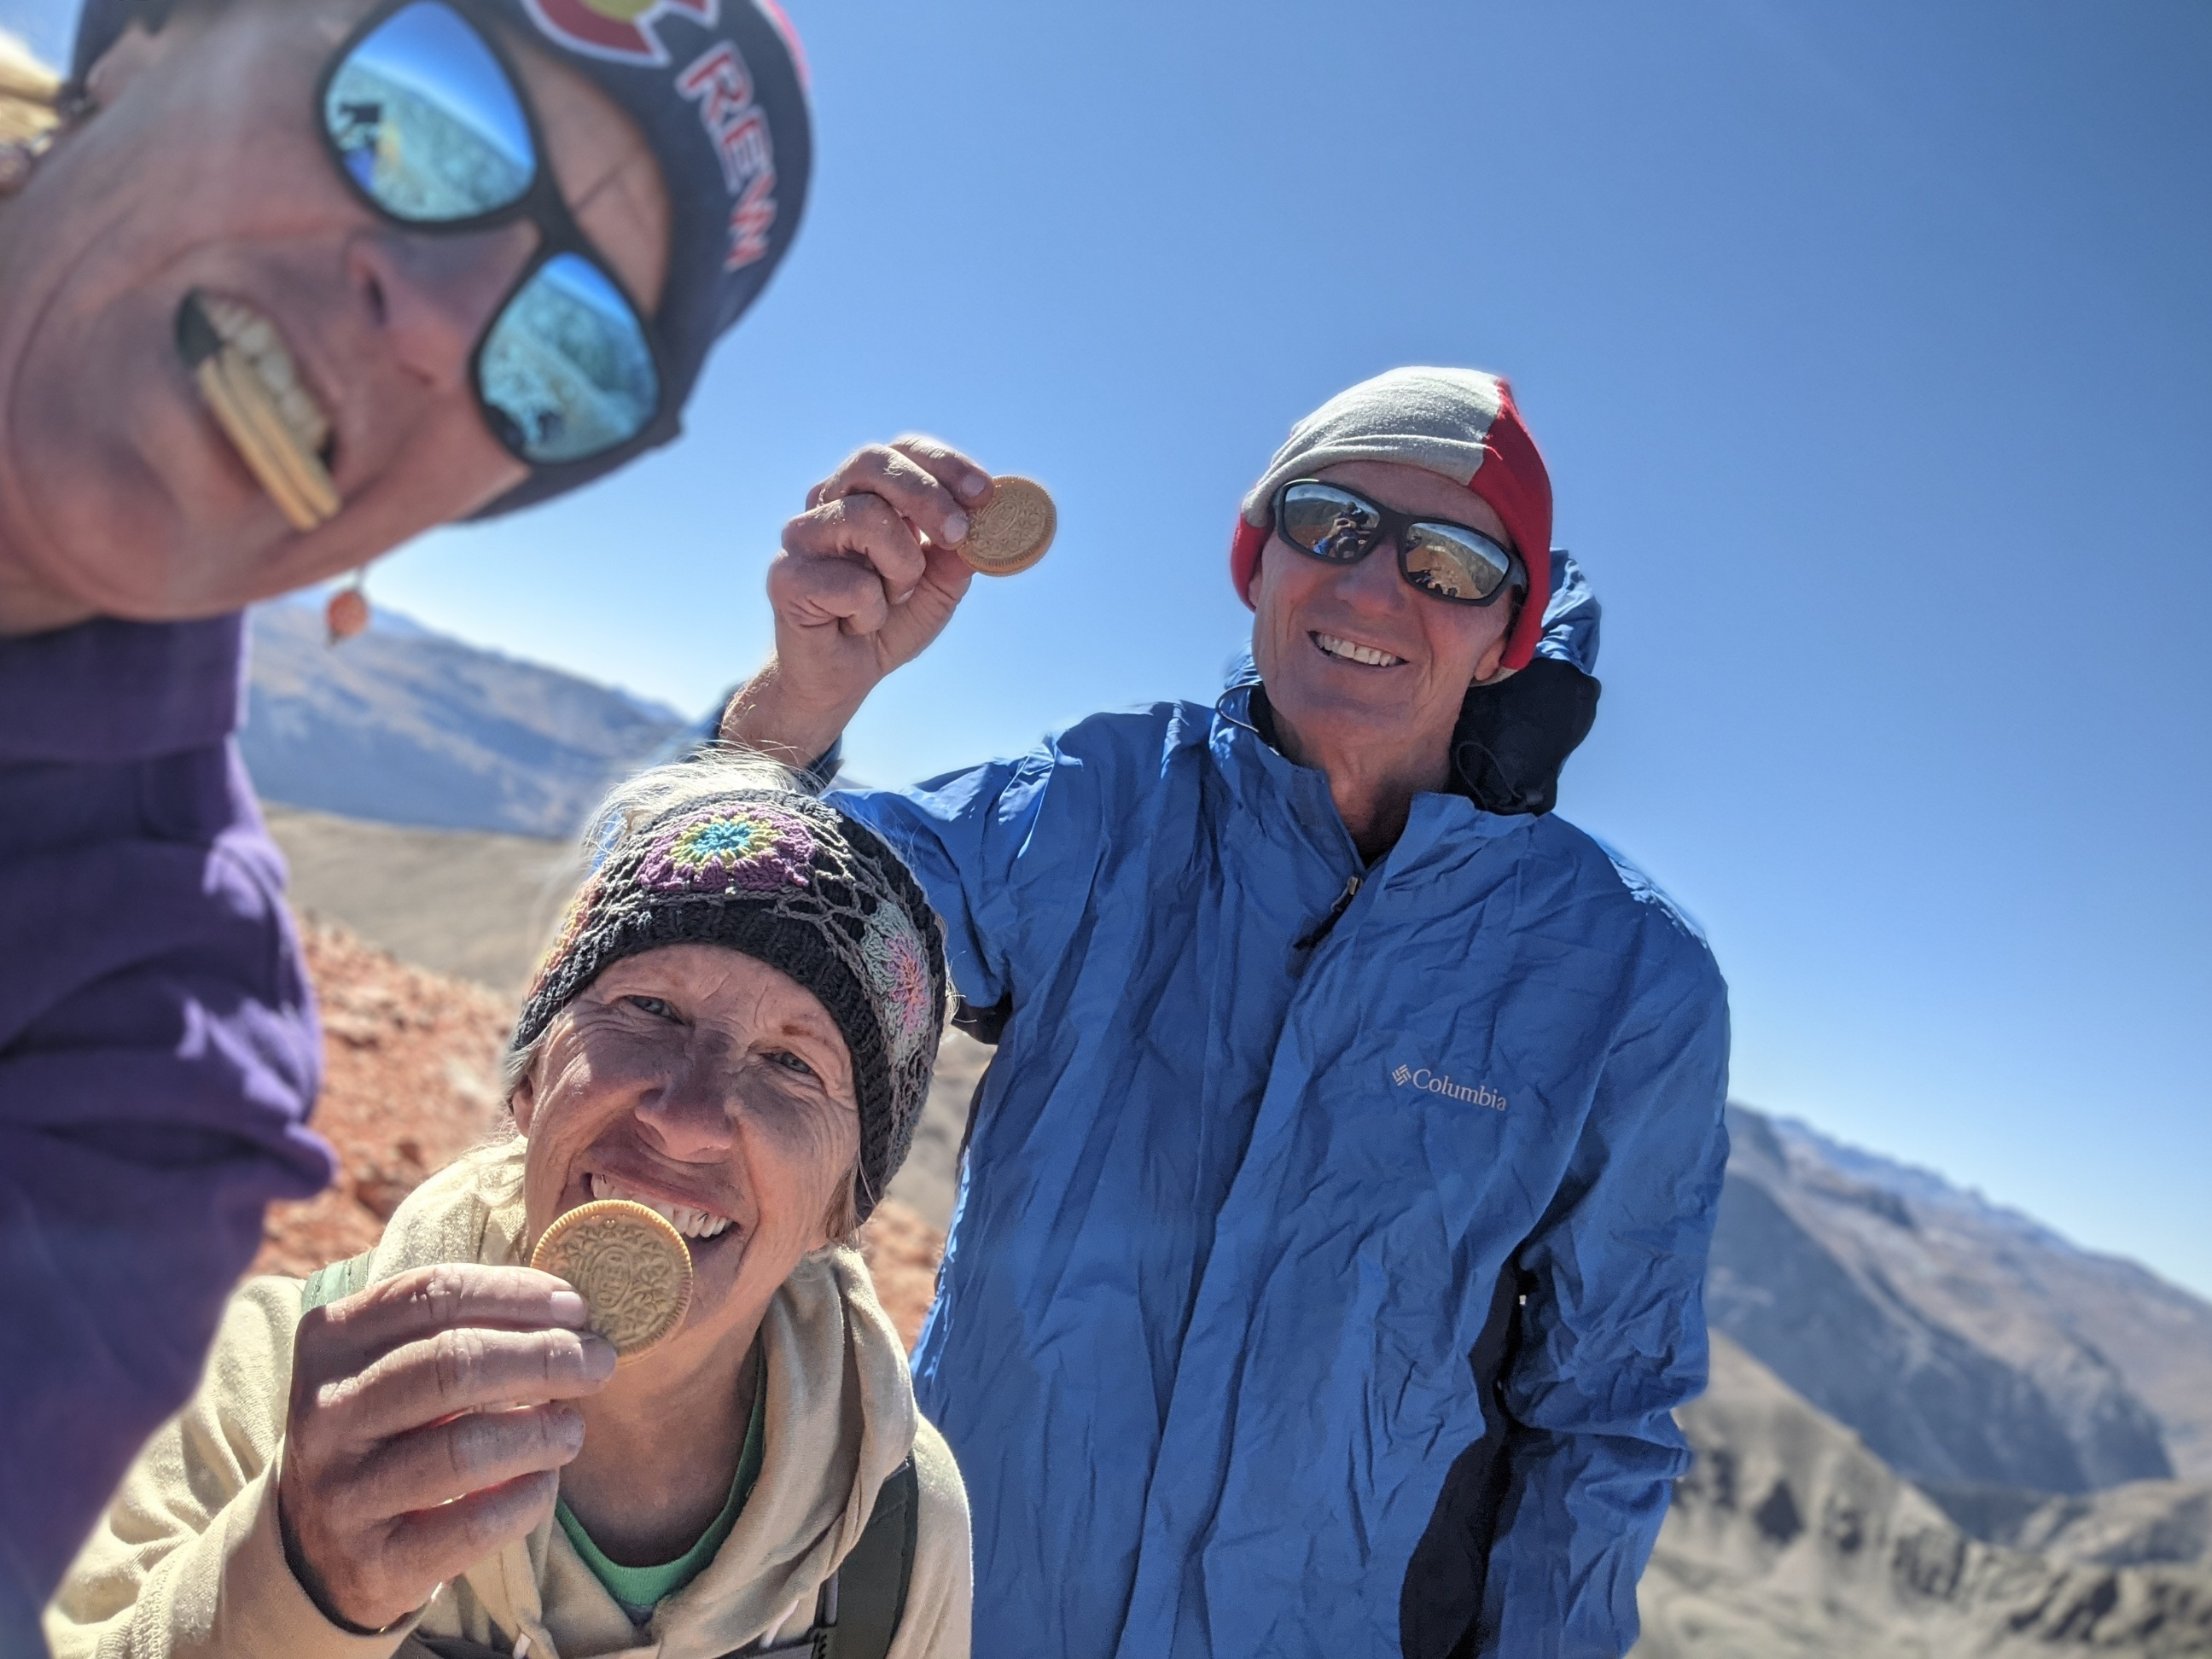 Laurel Darren (left), owner of the Wild Bunch Desert Guides, enjoys some Golden Oreos with Caron Jones (center) and Glenn Heumann (right) of the Lake City Hiking Club. The trio were celebrating reaching the summit of the 14,000-foot Redcloud peak during a hike in late Sept. 2021.